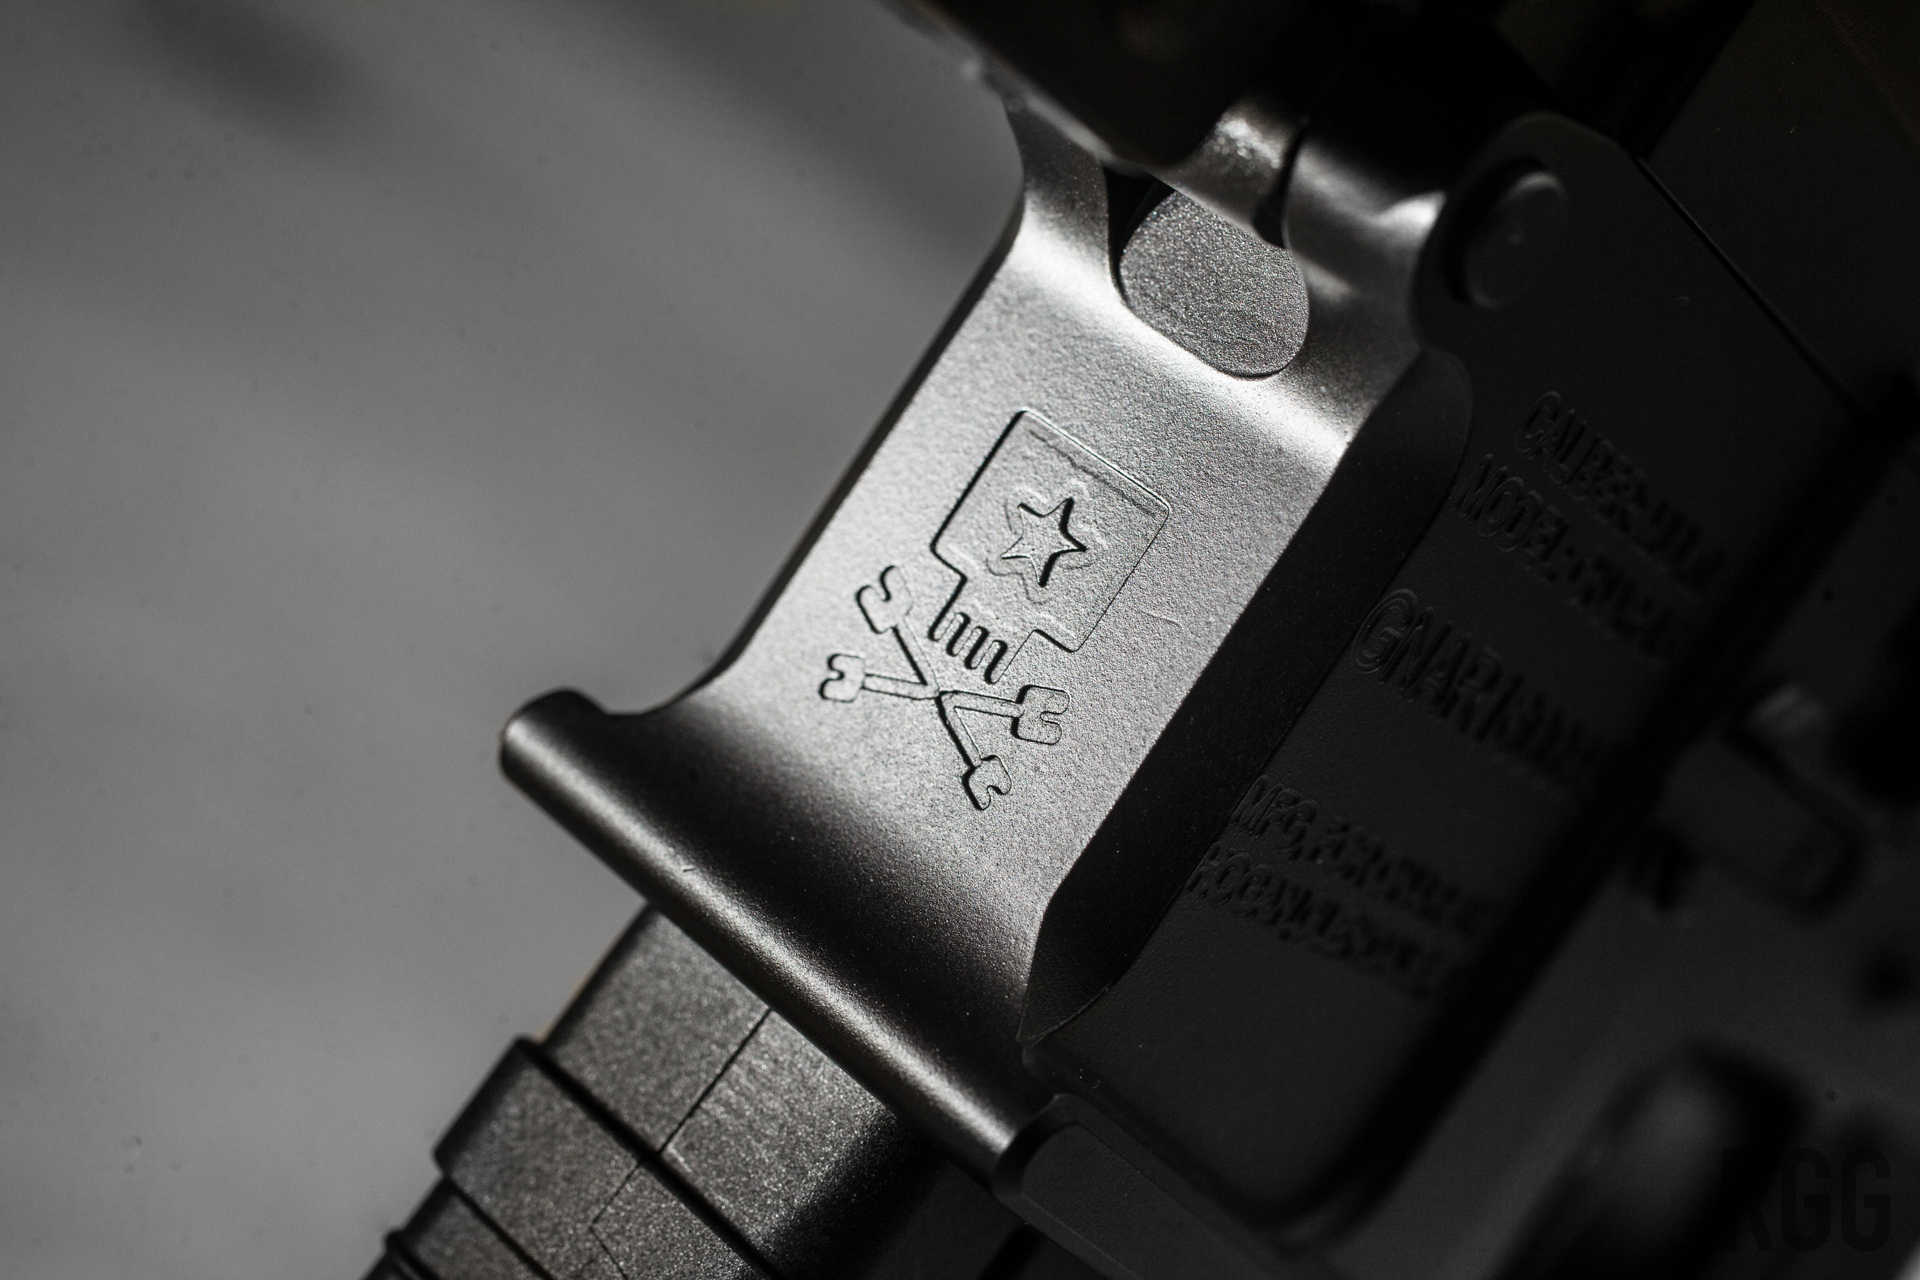 Magwell has a nifty engraving on the front...